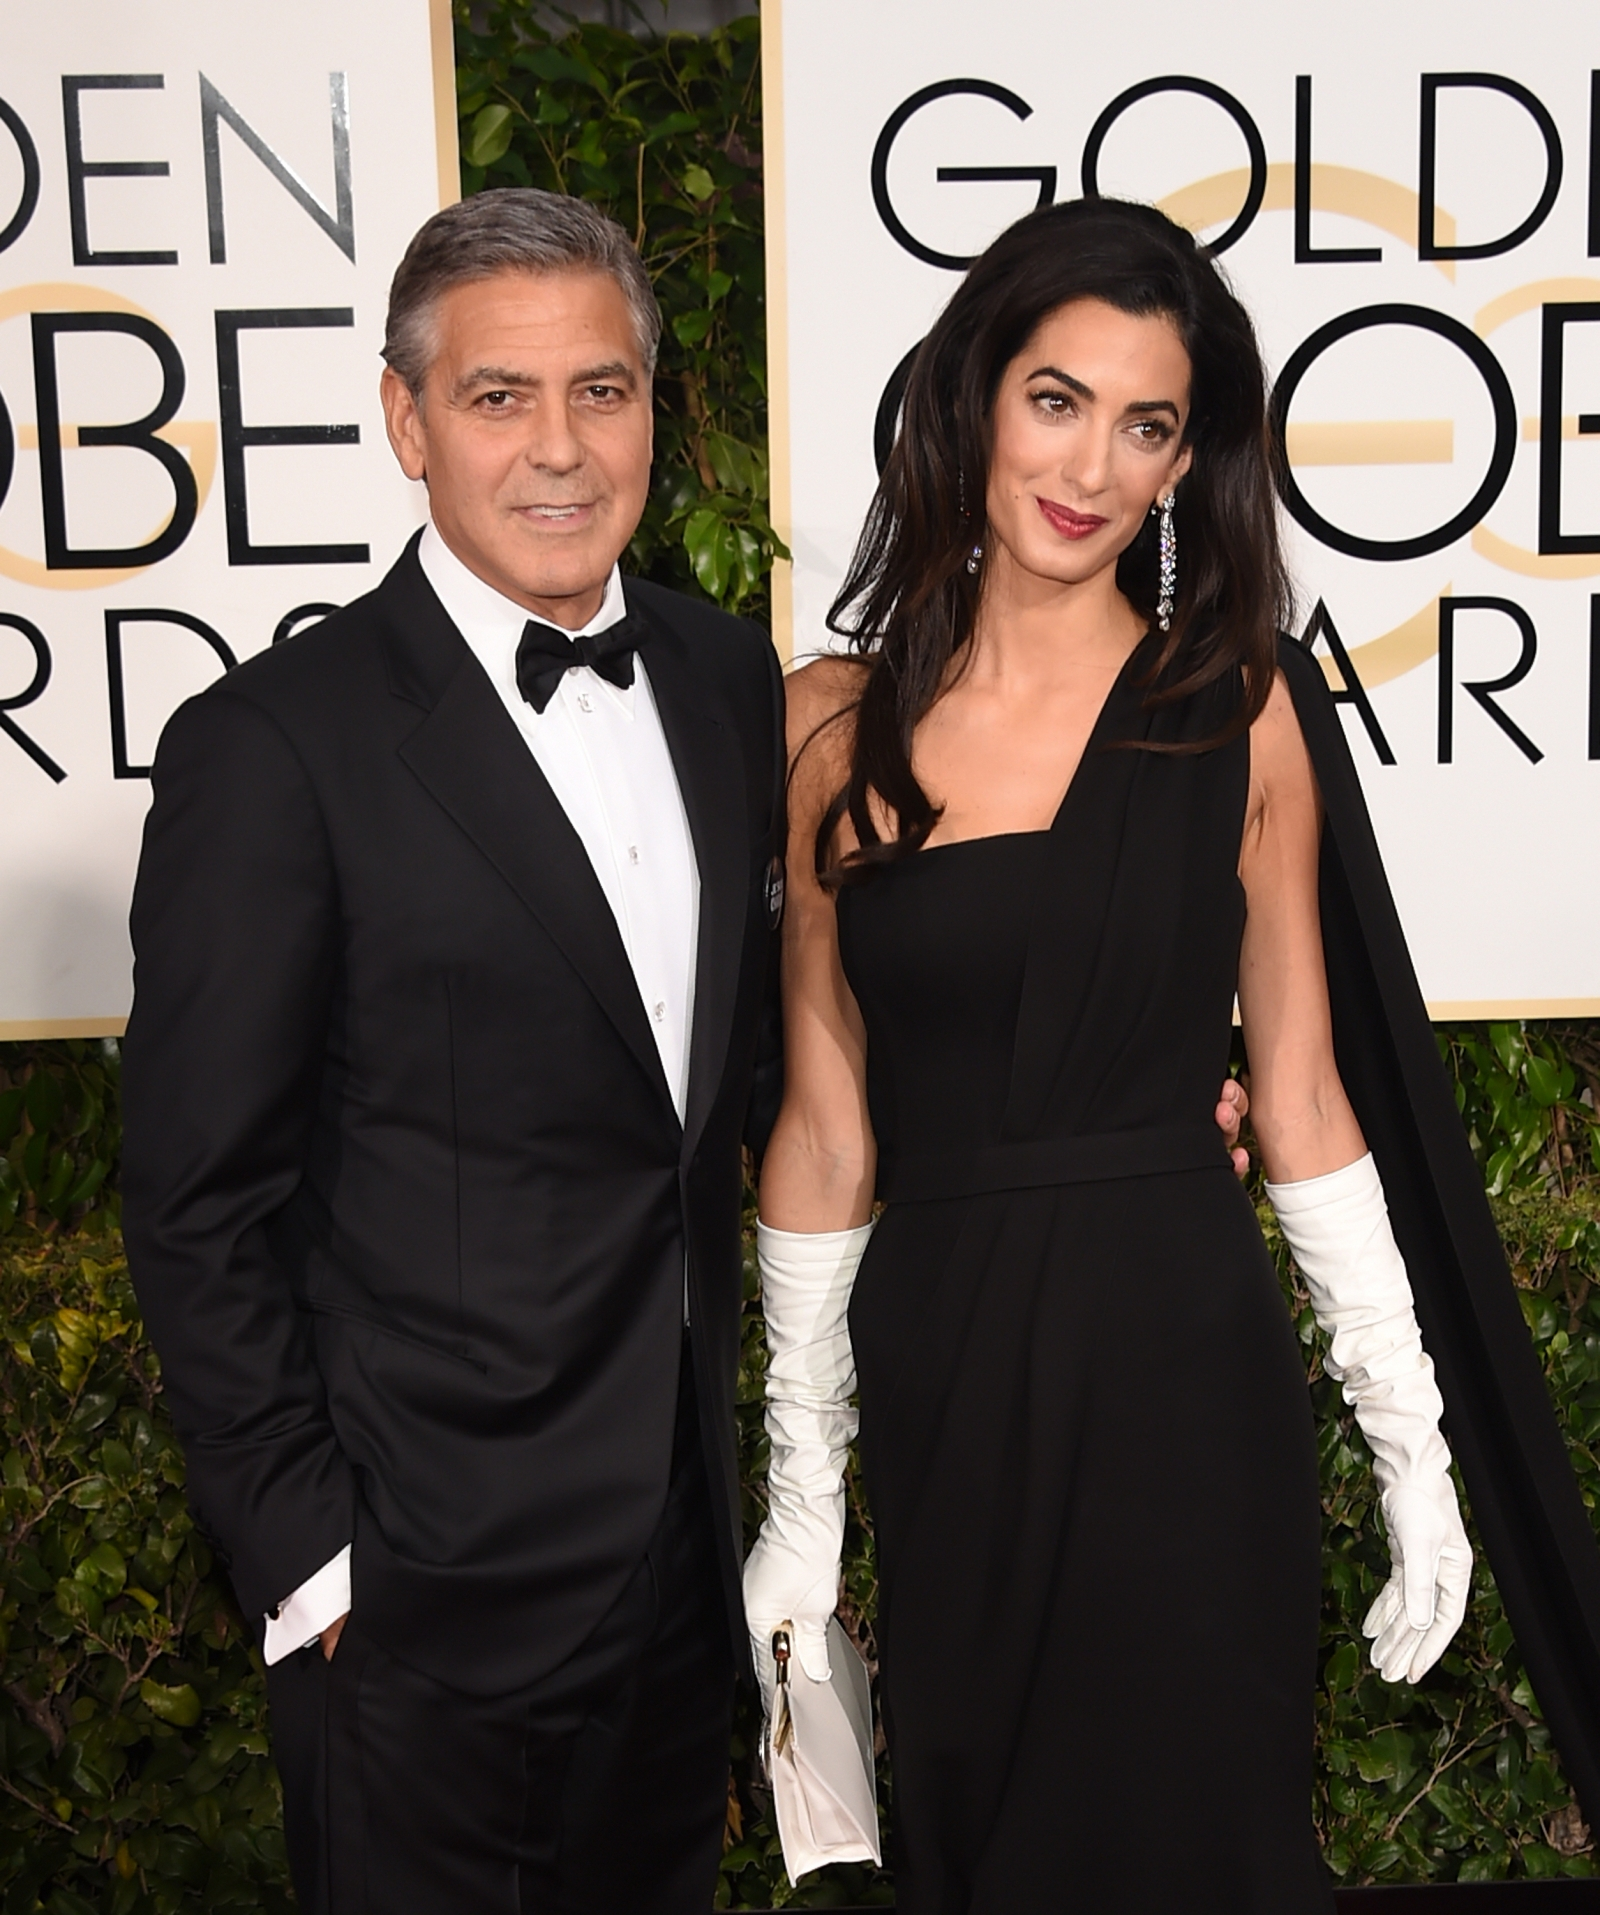 George clooney and his wife amal are renovating a house near reading